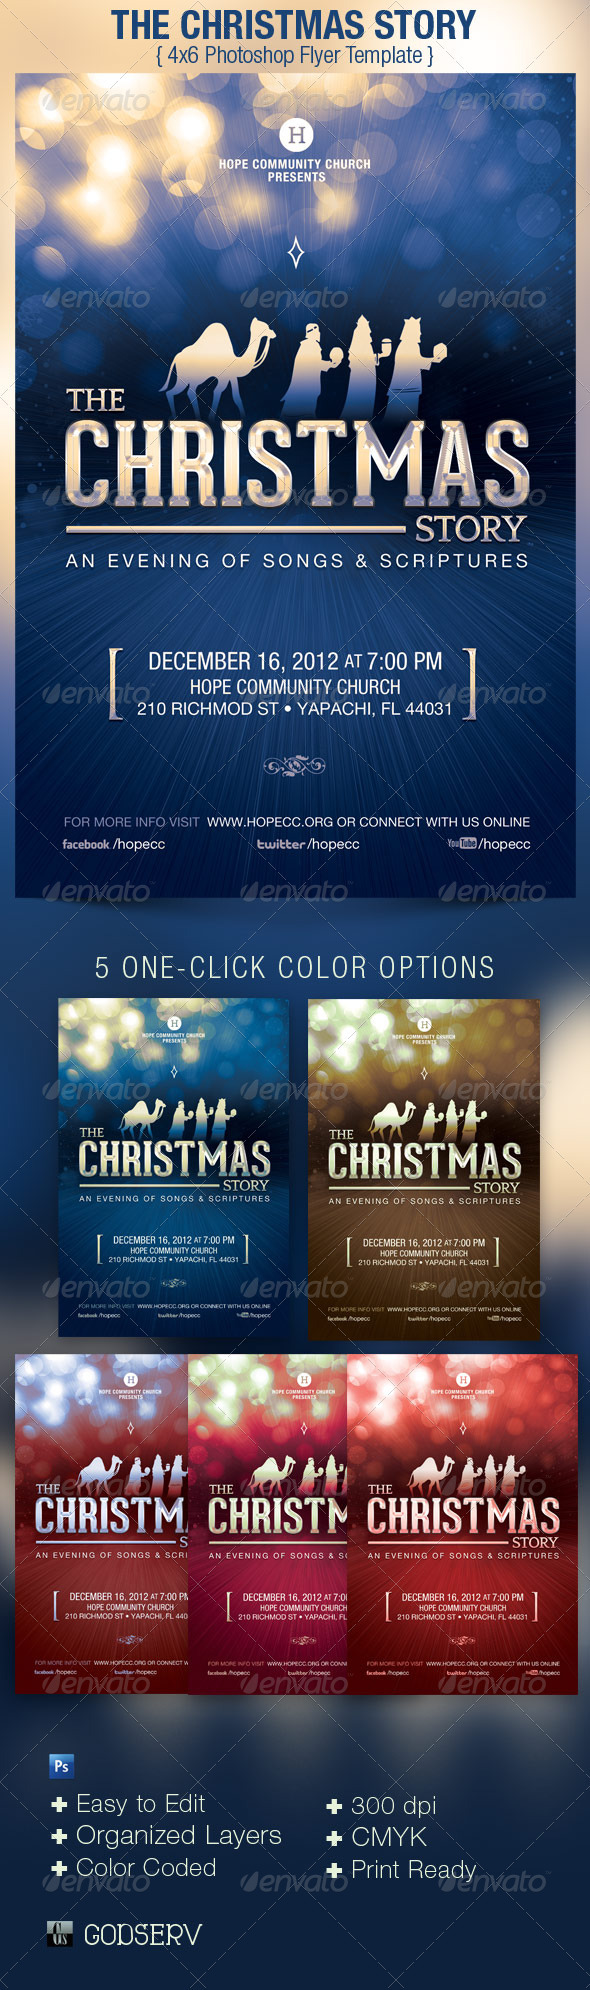 Christmas Story Church Flyer Template - Church Flyers